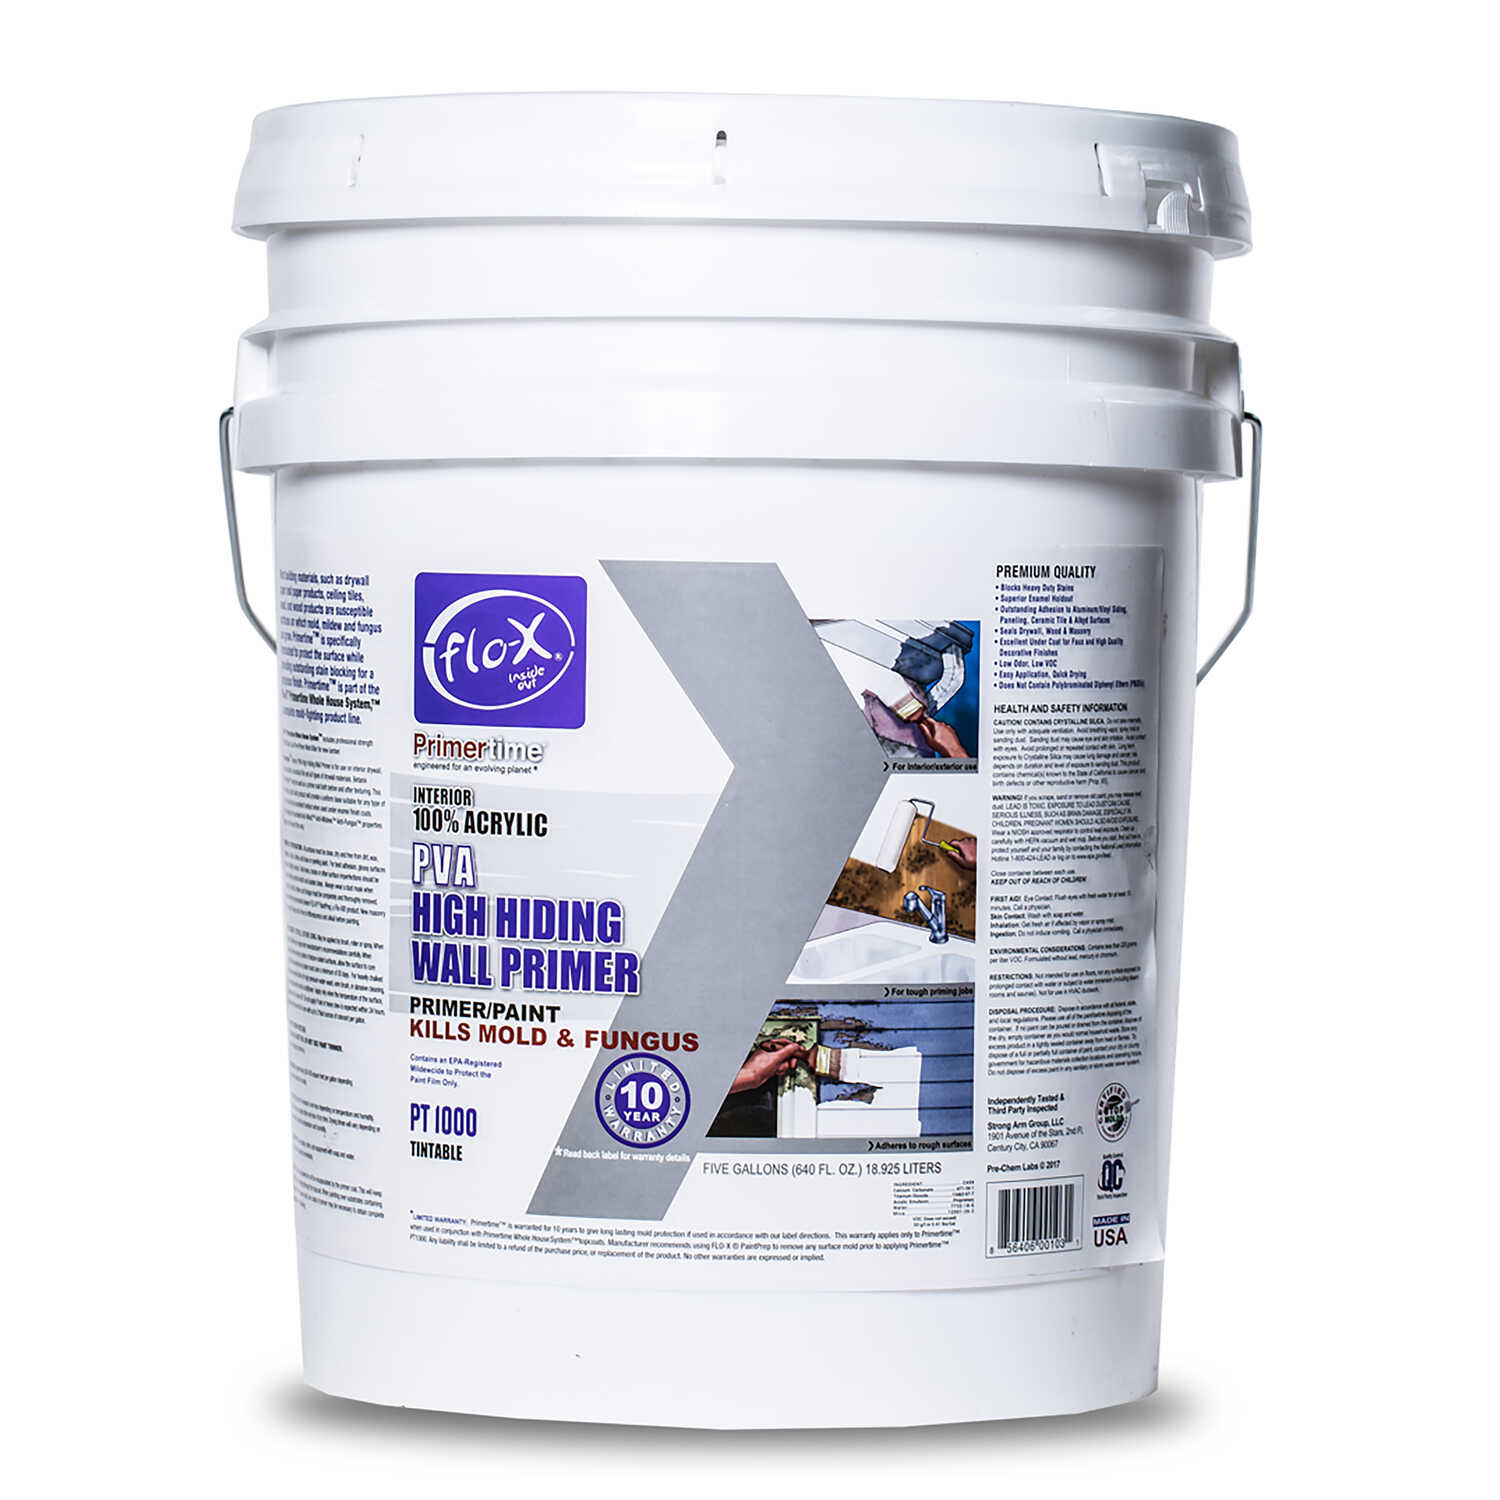 Flo-X  Primertime  Smooth  Clear  Water-Based  Acrylic  Primer  For Drywall 5 gal.